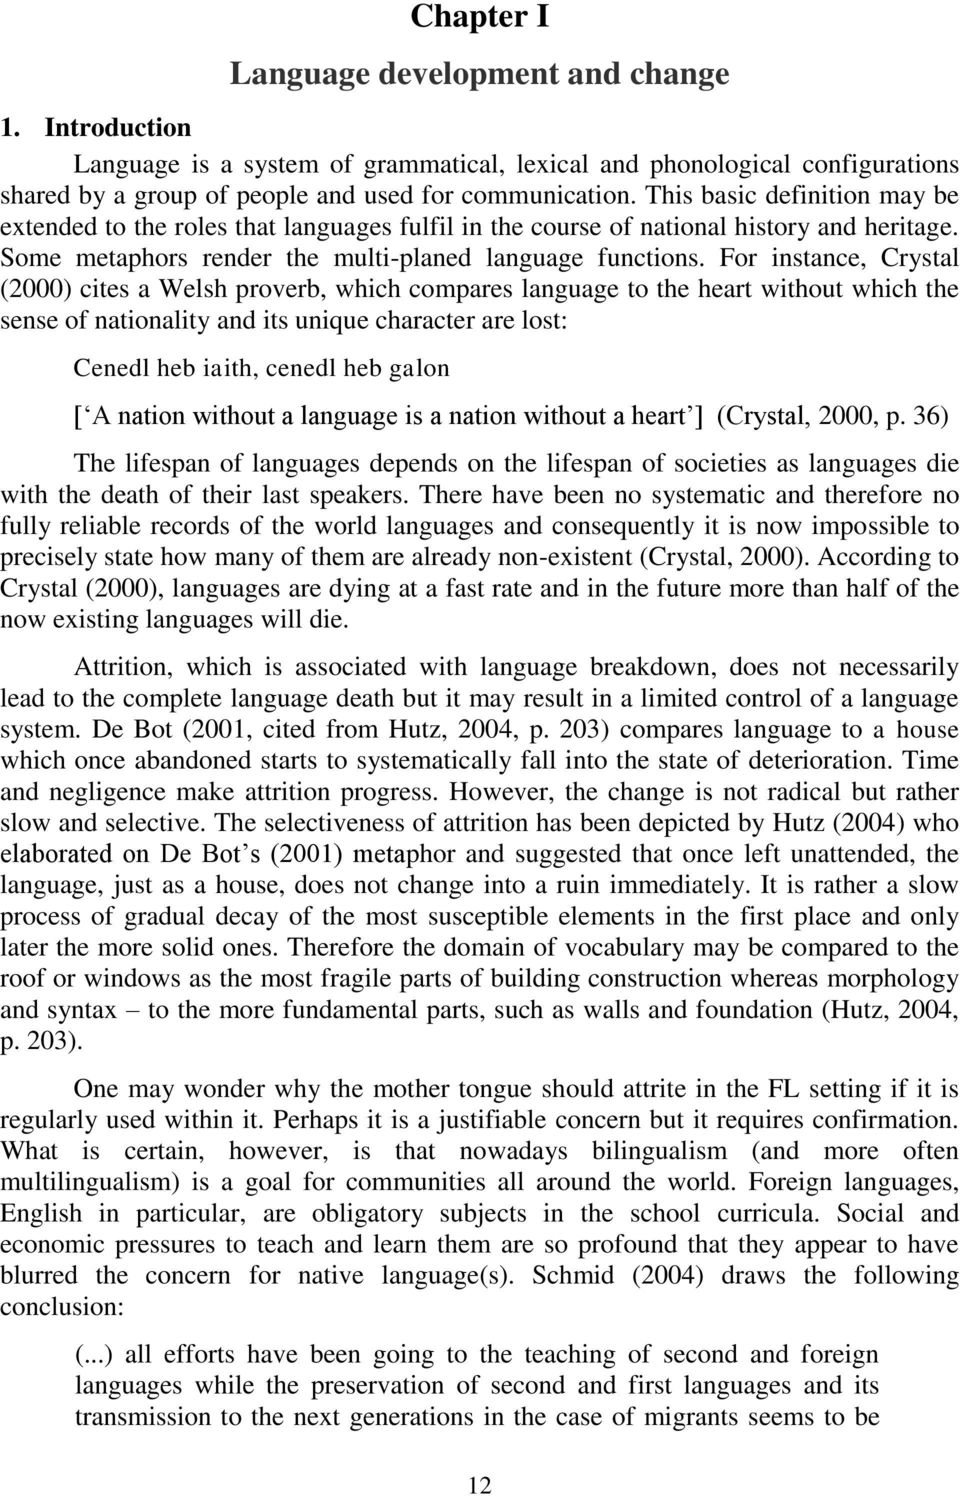 For instance, Crystal (2000) cites a Welsh proverb, which compares language to the heart without which the sense of nationality and its unique character are lost: Cenedl heb iaith, cenedl heb galon [